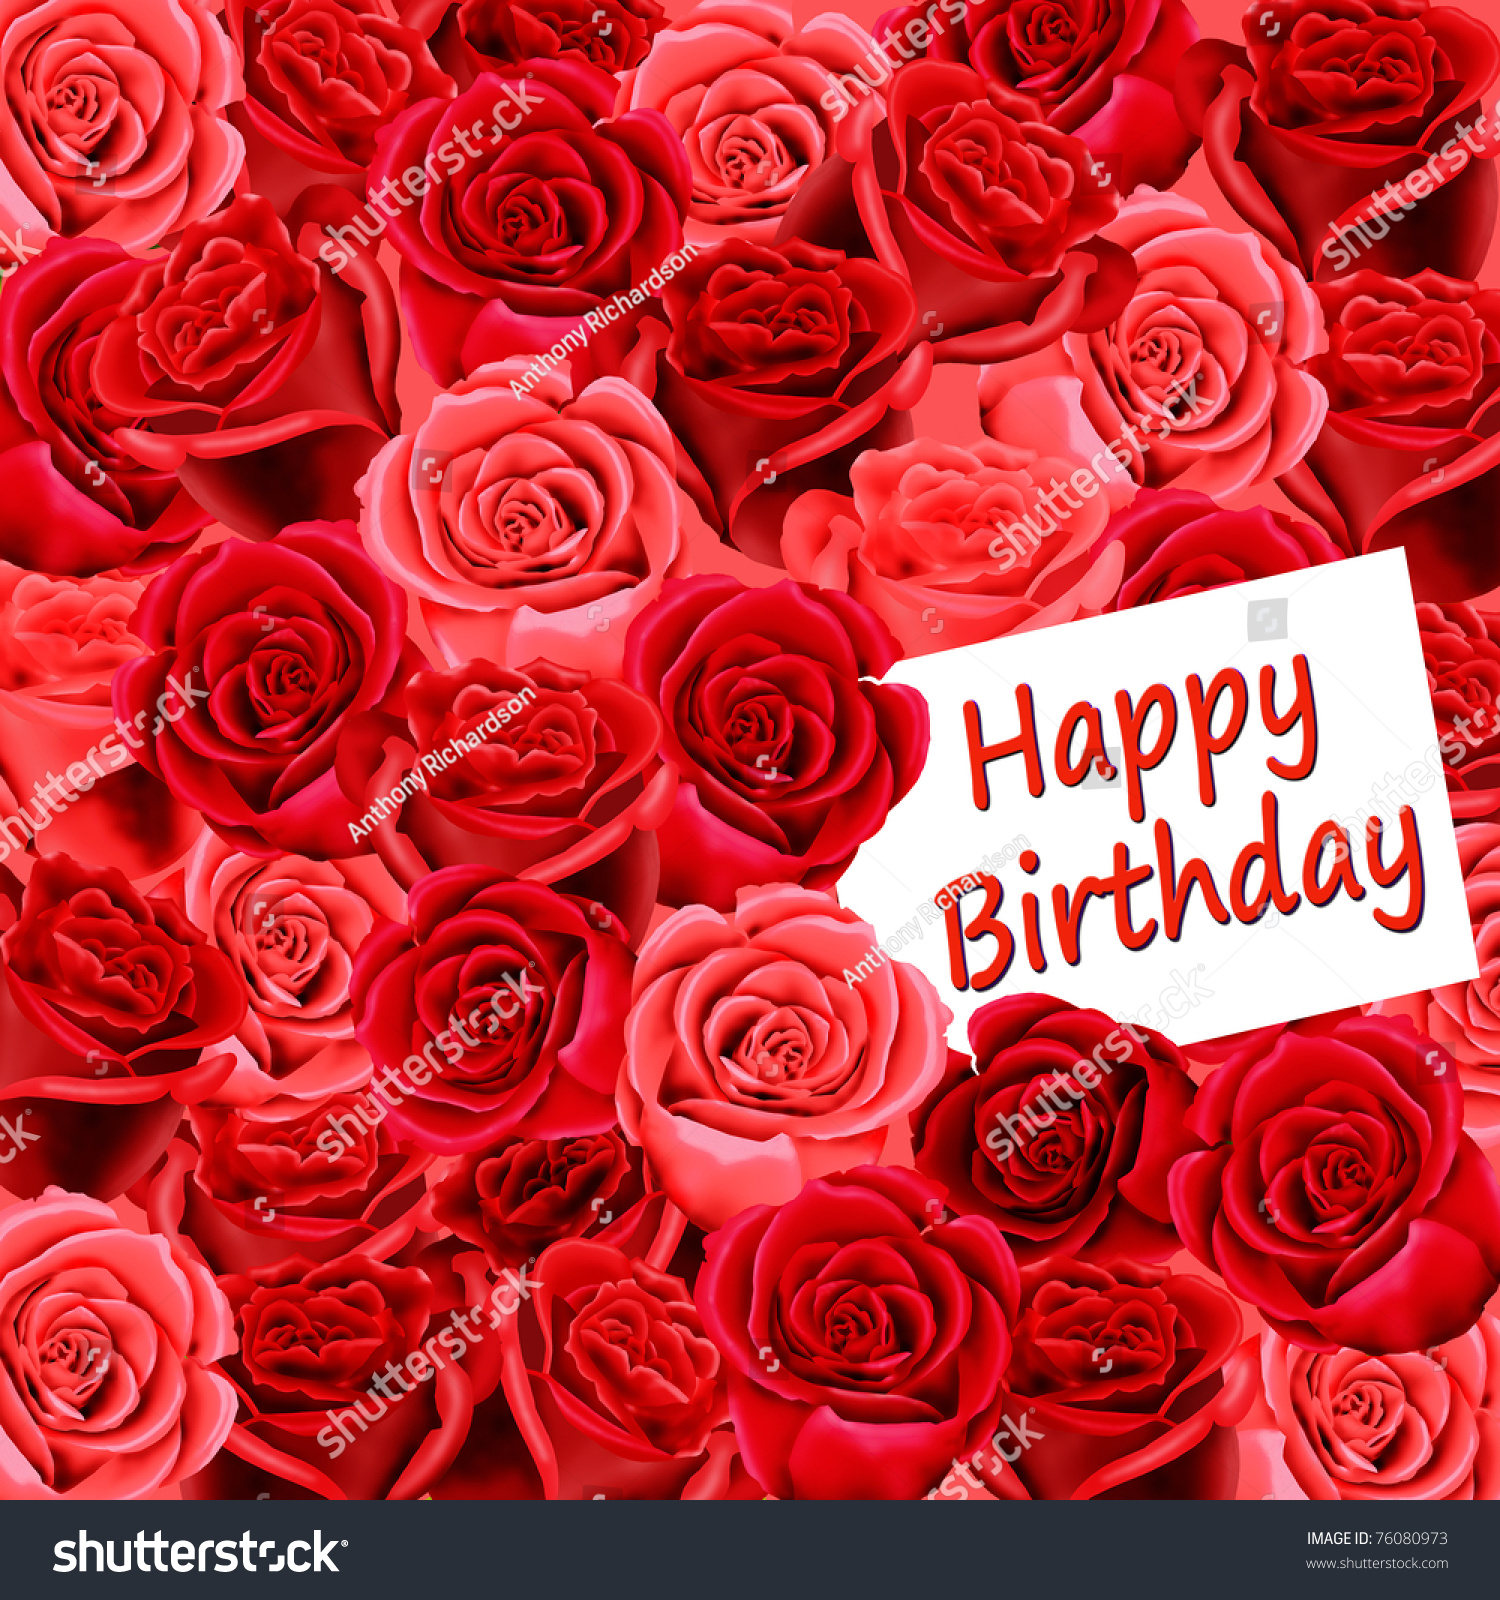 Birthday Card With Roses And Happy